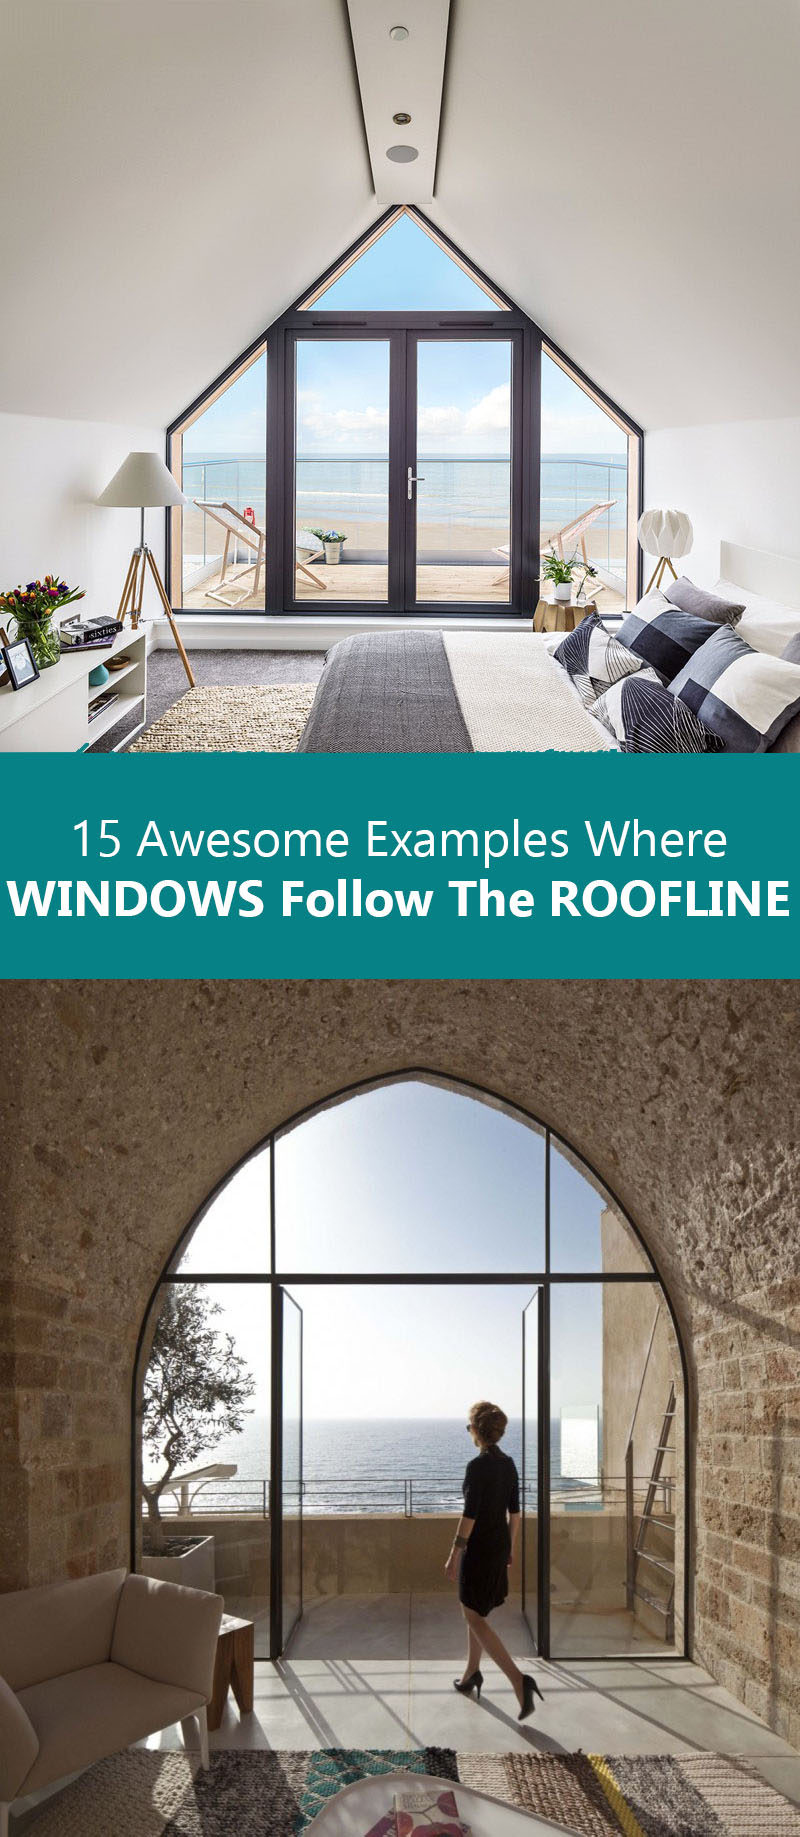 15 Awesome Examples Where Windows Follow The Roofline